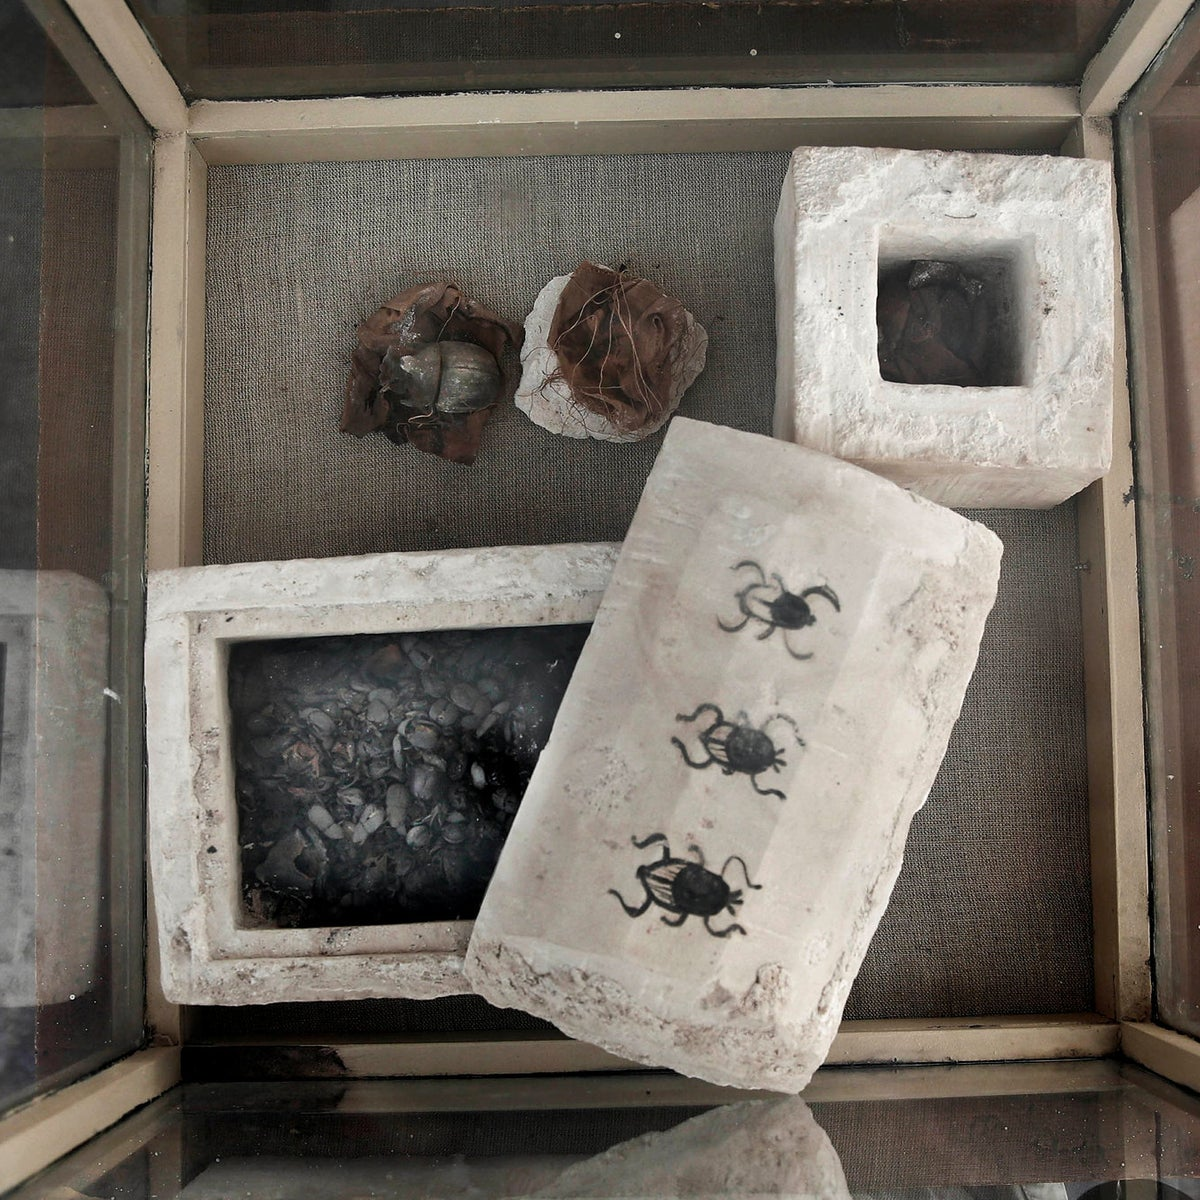 Mummified scarabs on display in a glass case found in a newly discovered tomb, at an ancient necropolis near Egypt's famed pyramids in Saqqara, Giza, Egypt, Saturday, Nov. 10, 2018. A top Egyptian antiquities official says local archaeologists have discovered seven Pharaonic Age tombs near the capital Cairo containing dozens of cat mummies along with wooden statues depicting other animals.